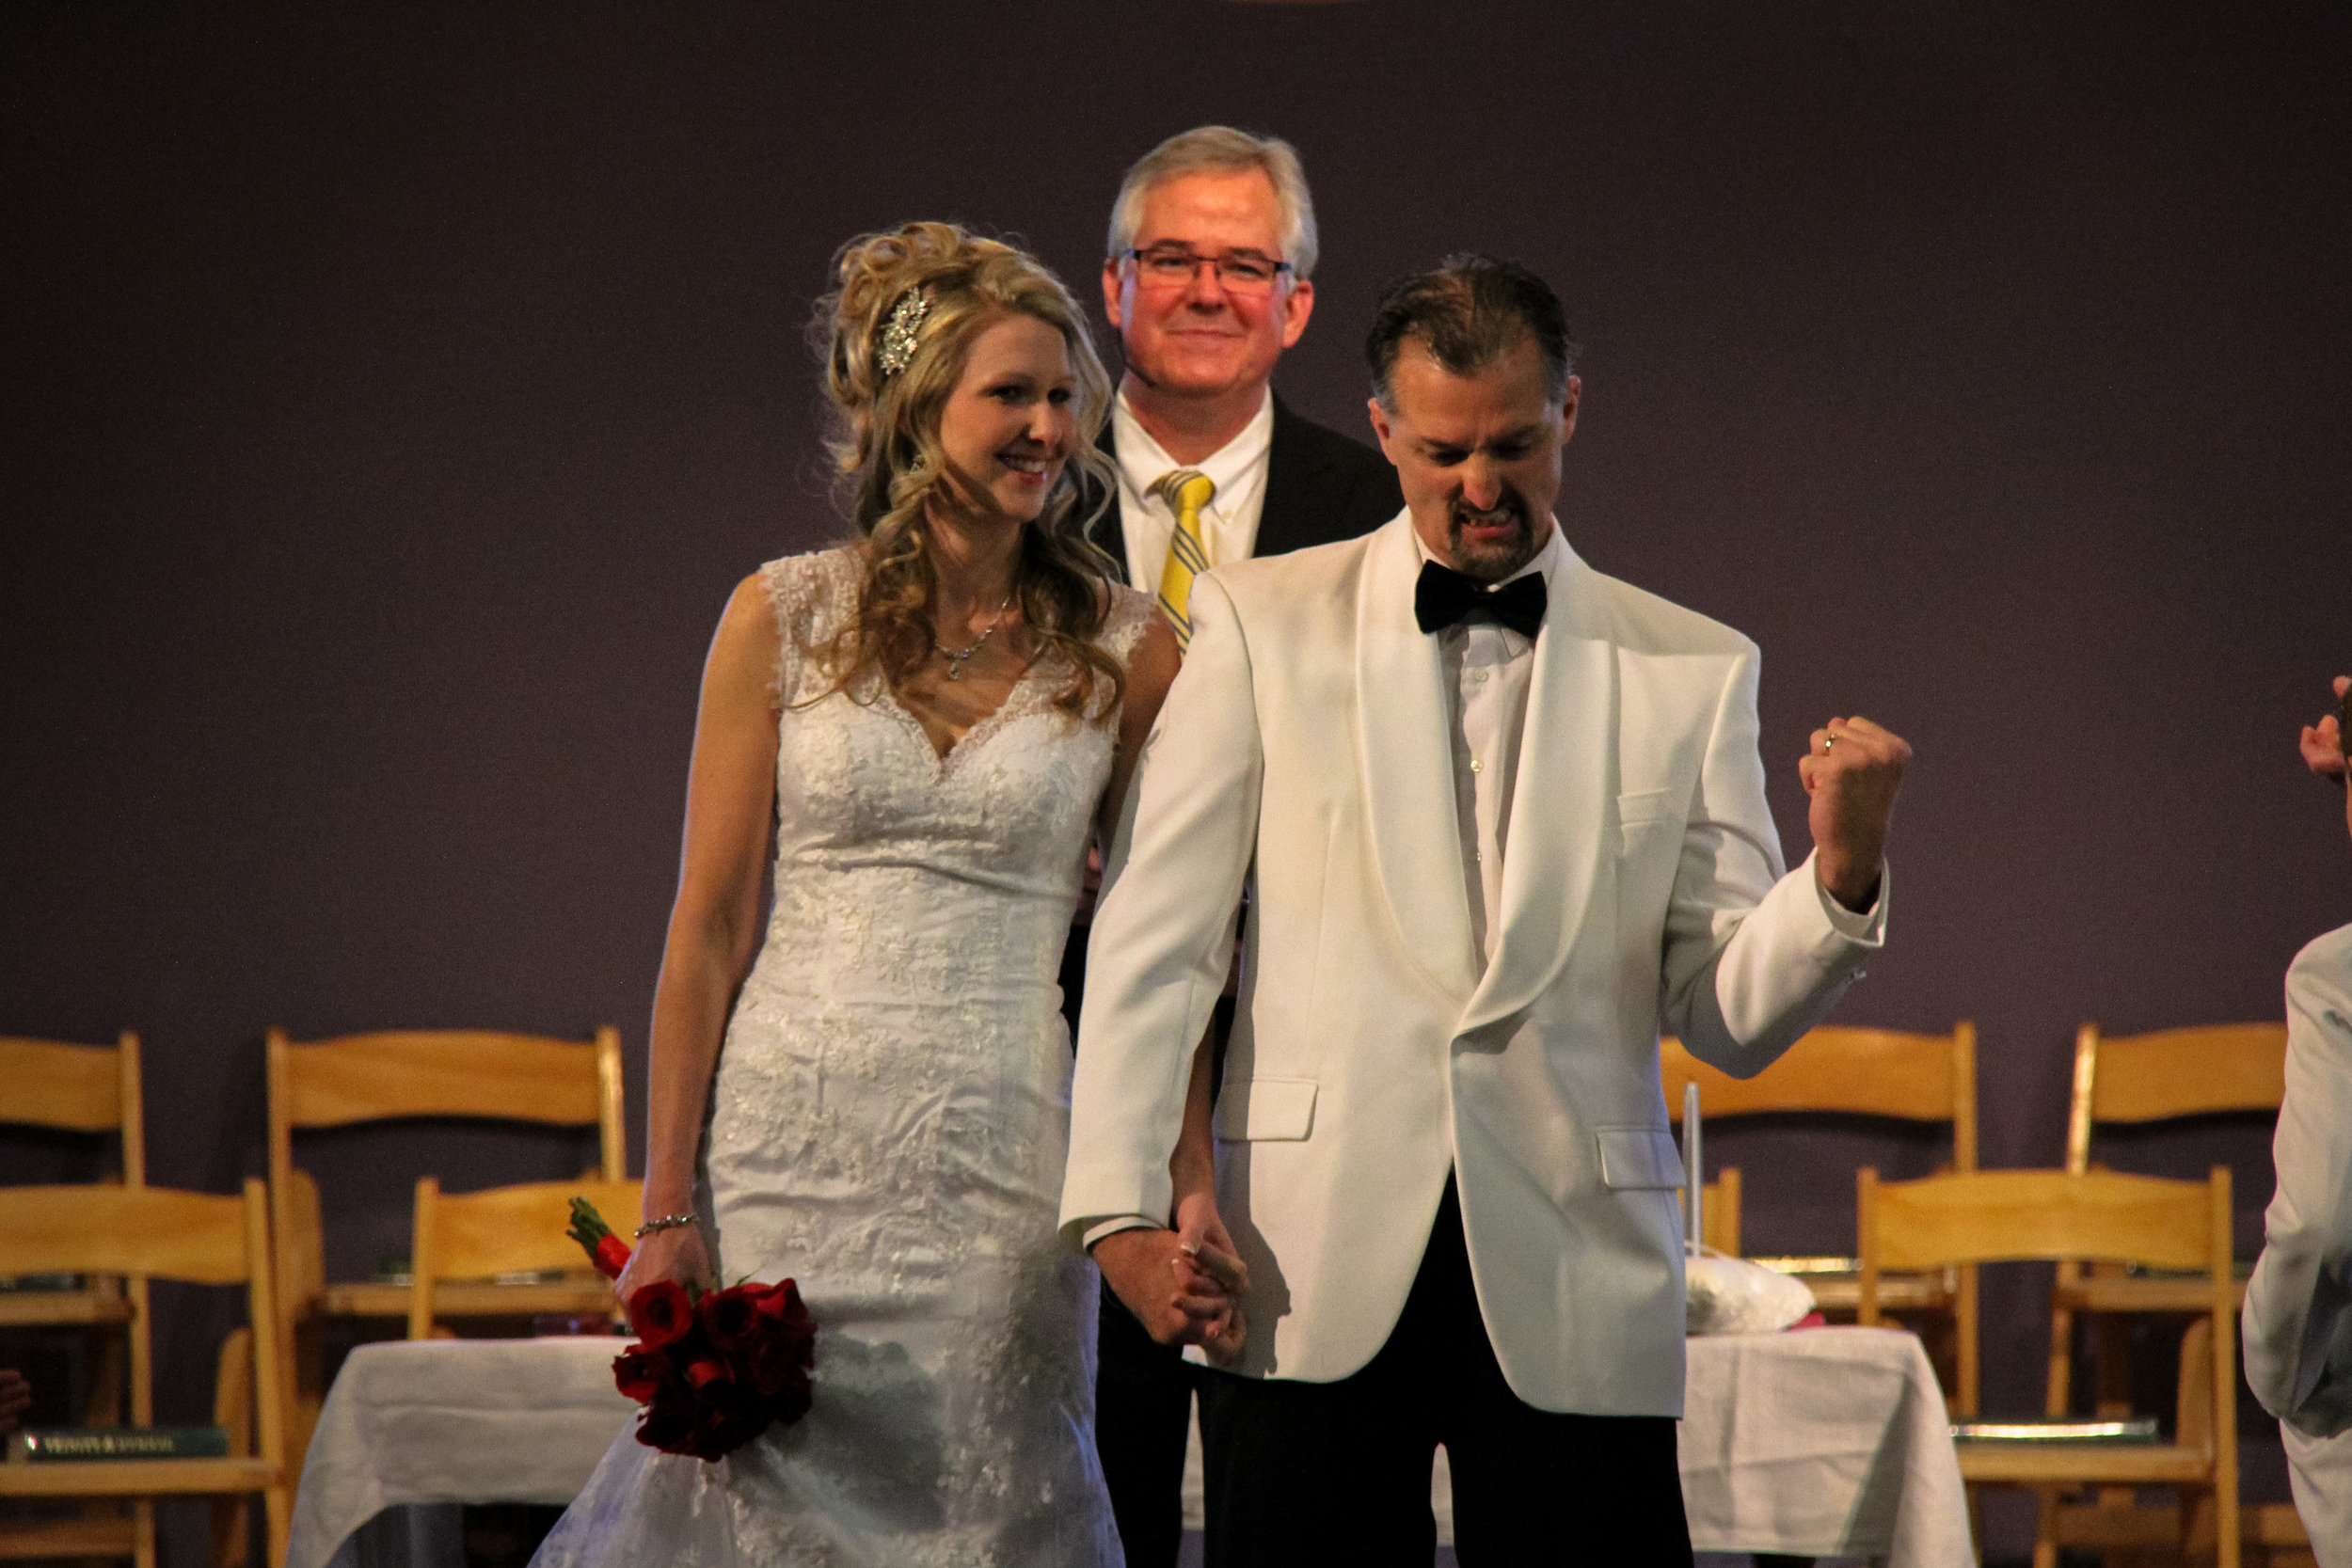 Perry McCale Wedding 3-7-15-115.jpg